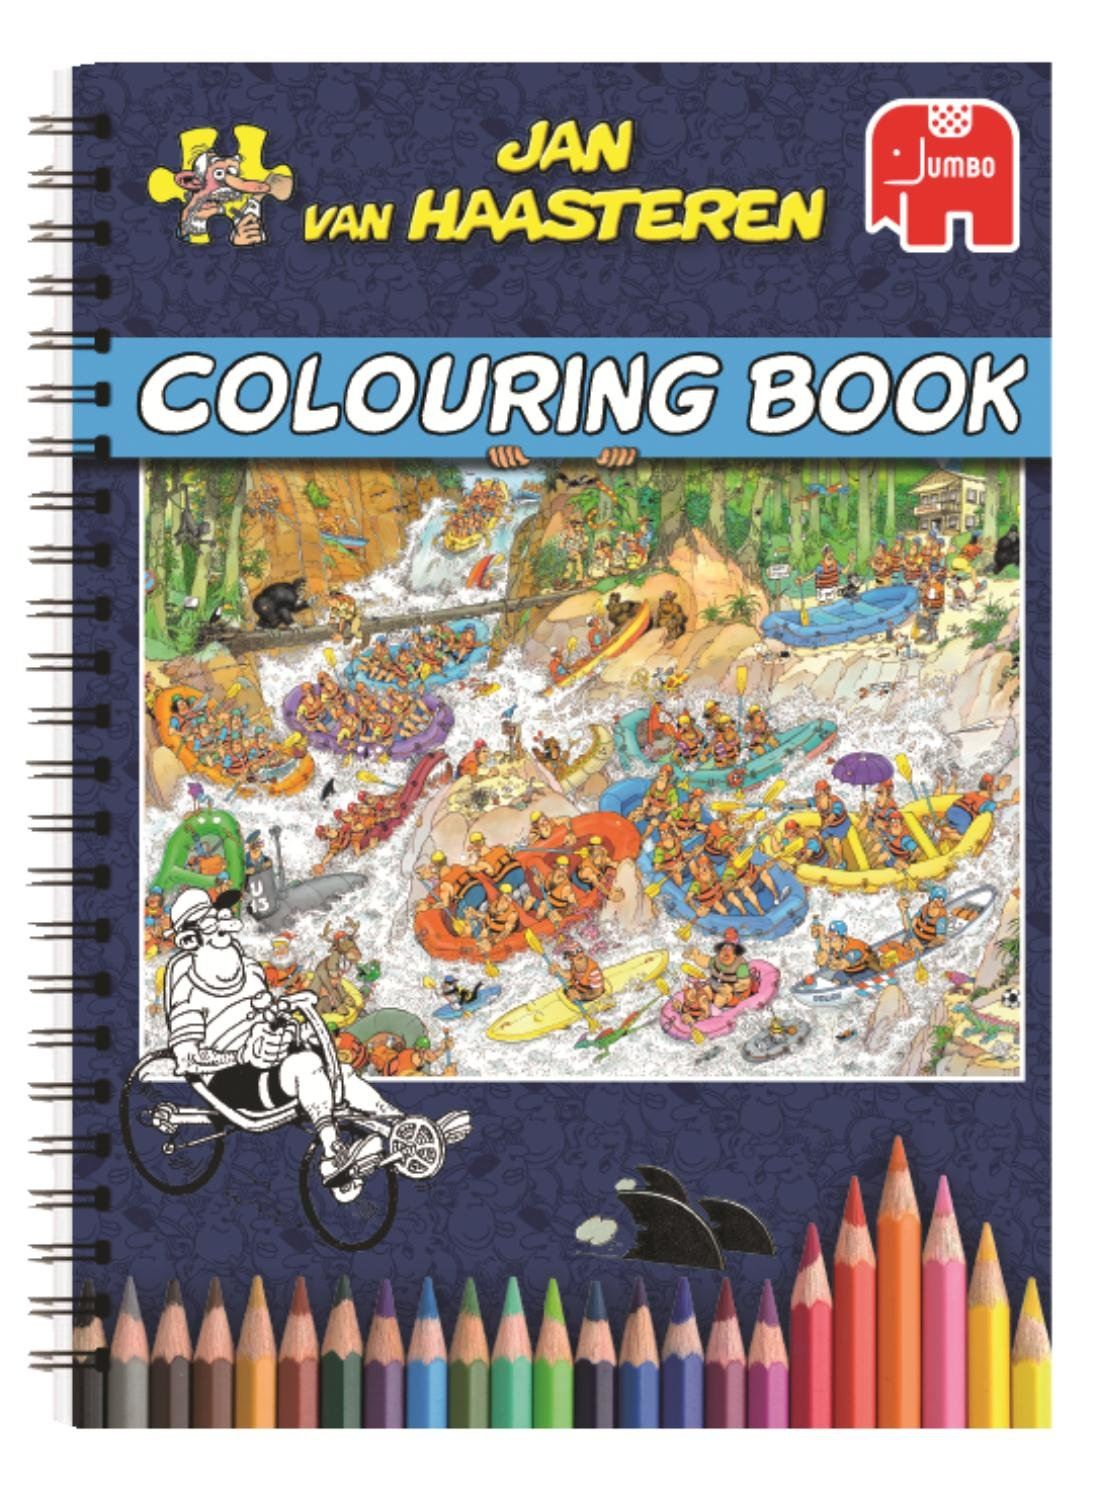 jan haasteren coloring book i loads of giggles and